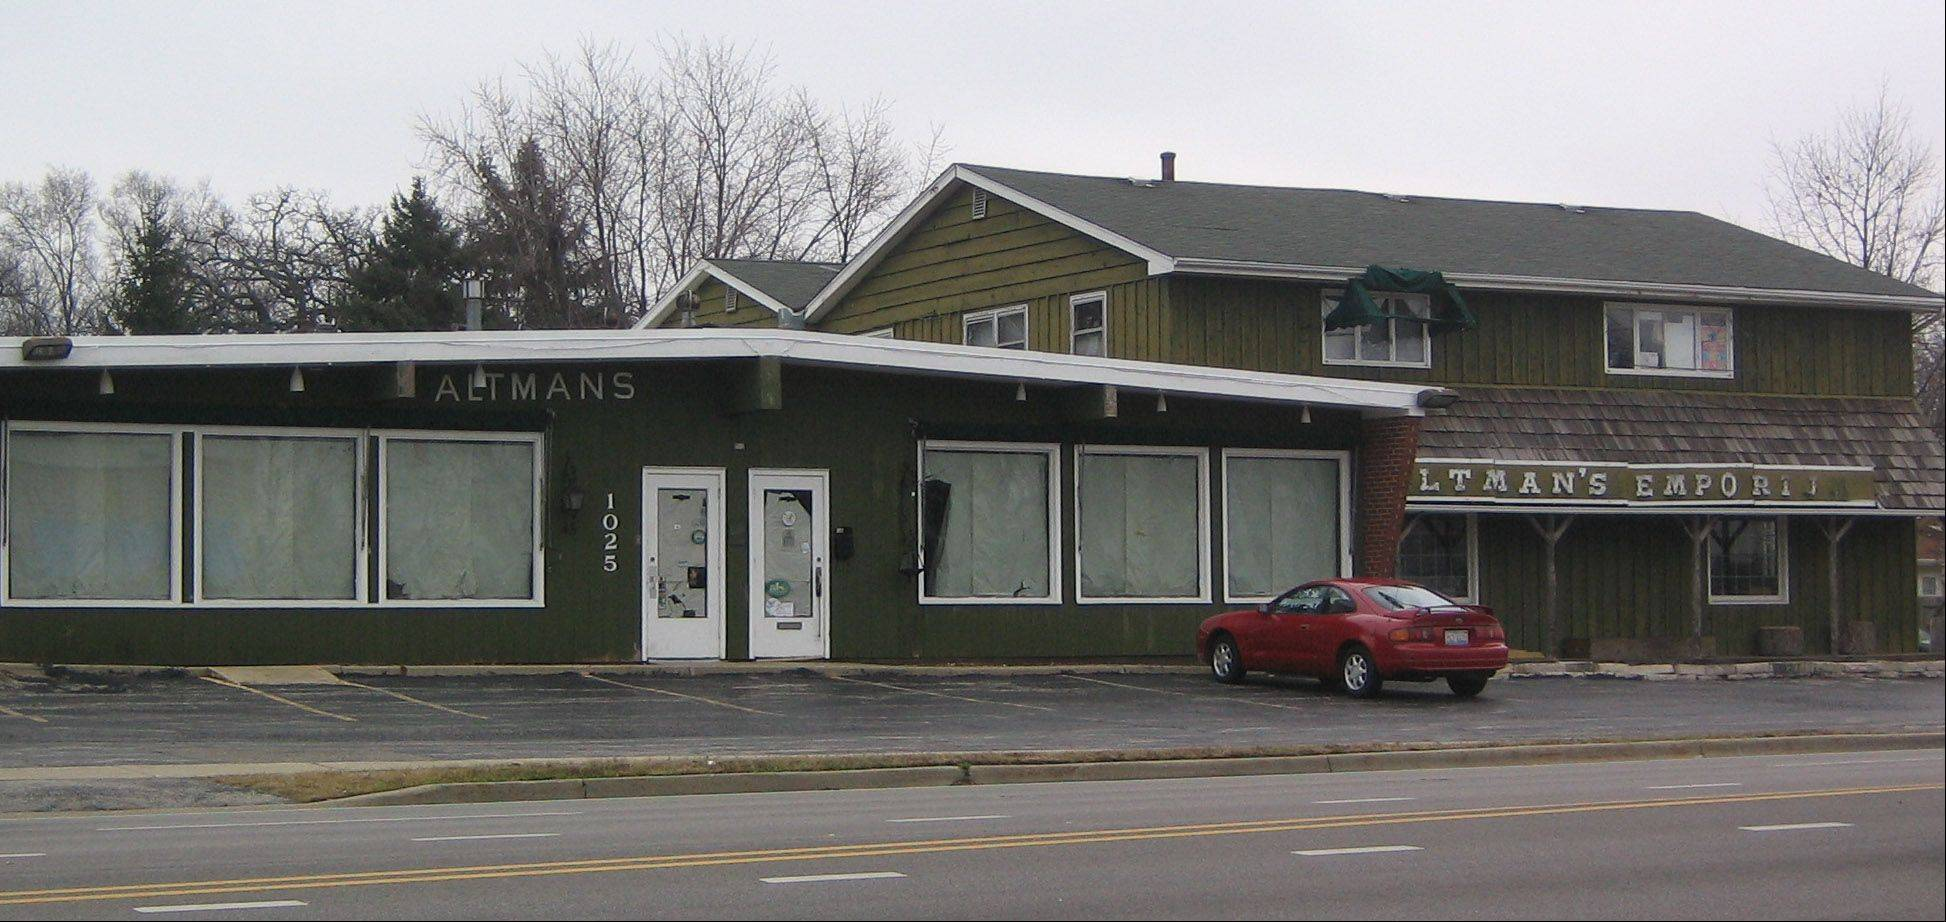 Round Lake Beach trustees say they will work with a former Golden Gloves boxer on a proposal to open a boxing club the former Altman's Emporium on Cedar Lake Road.